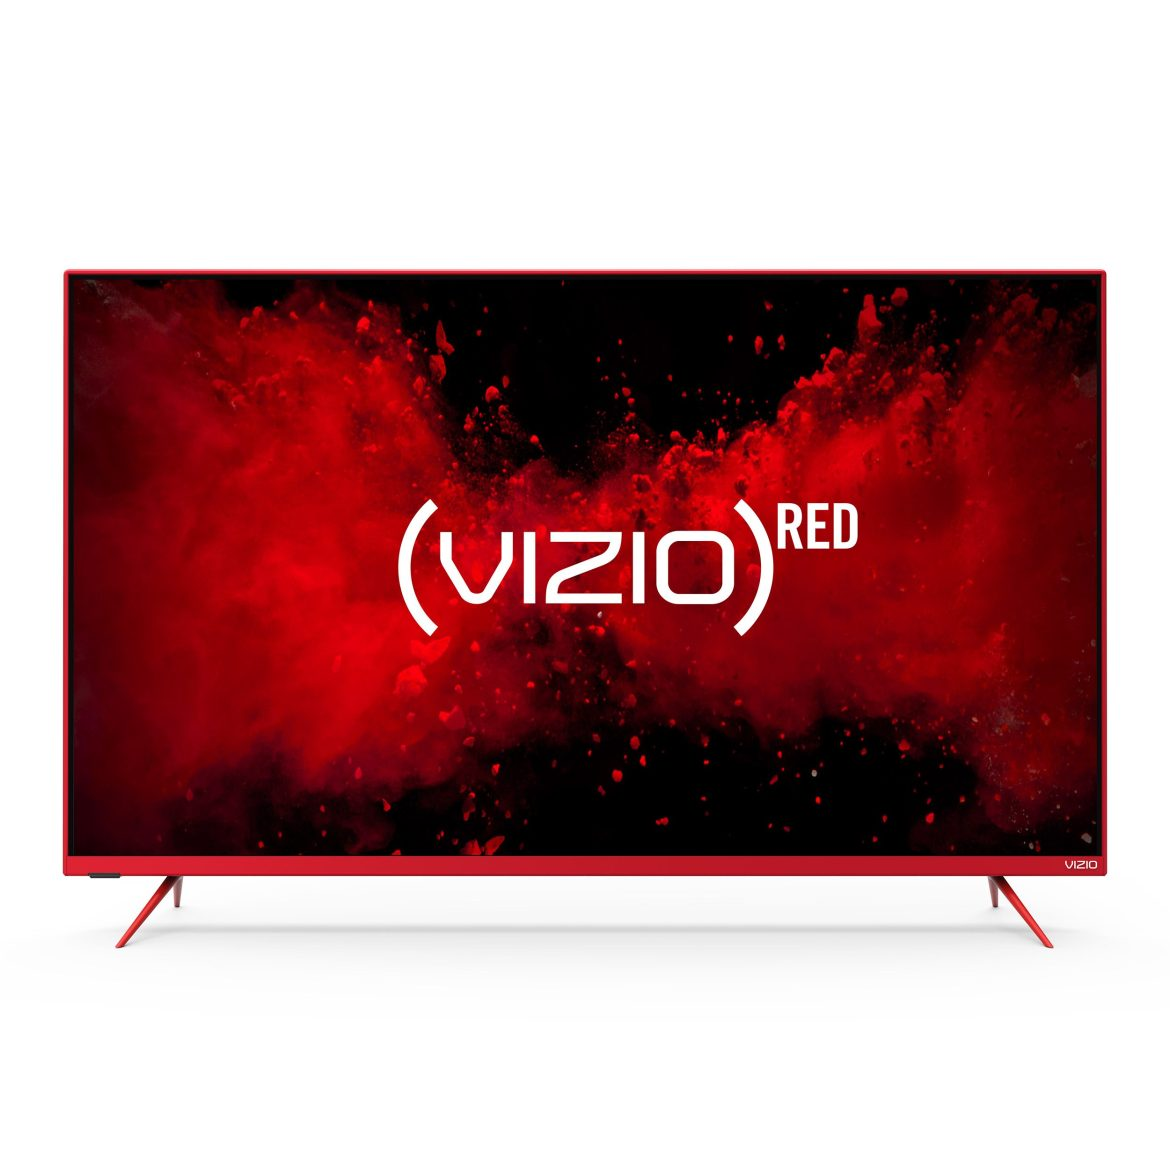 Vizio collaborates once again with  (RED)®